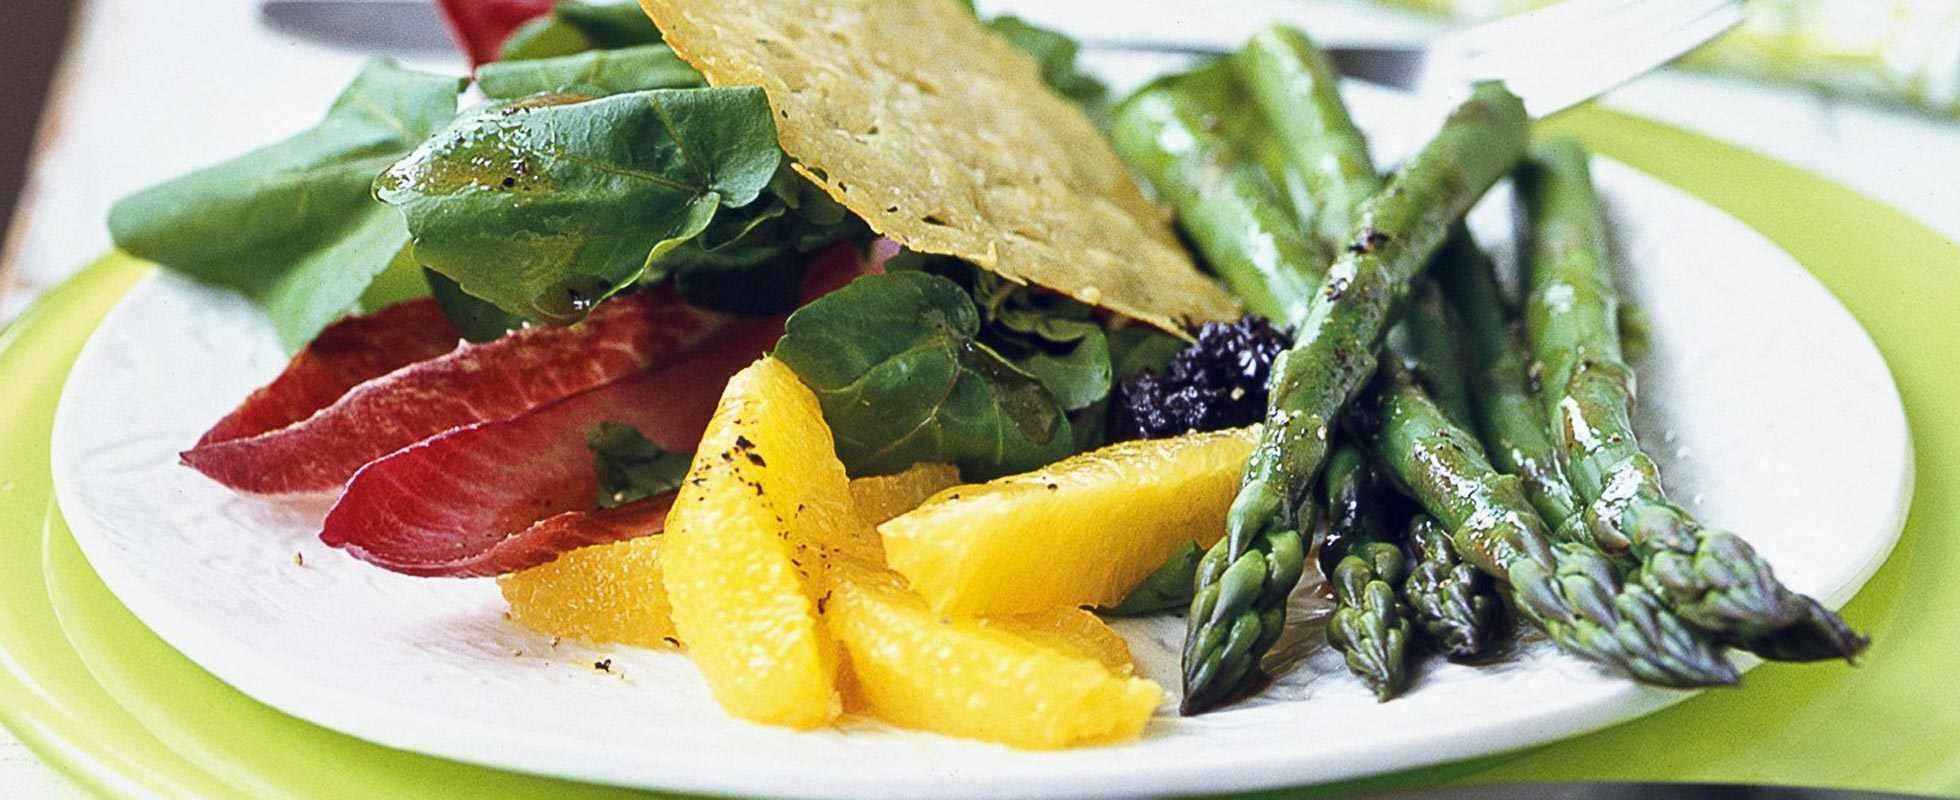 Watercress salad with orange, asparagus and parmesan